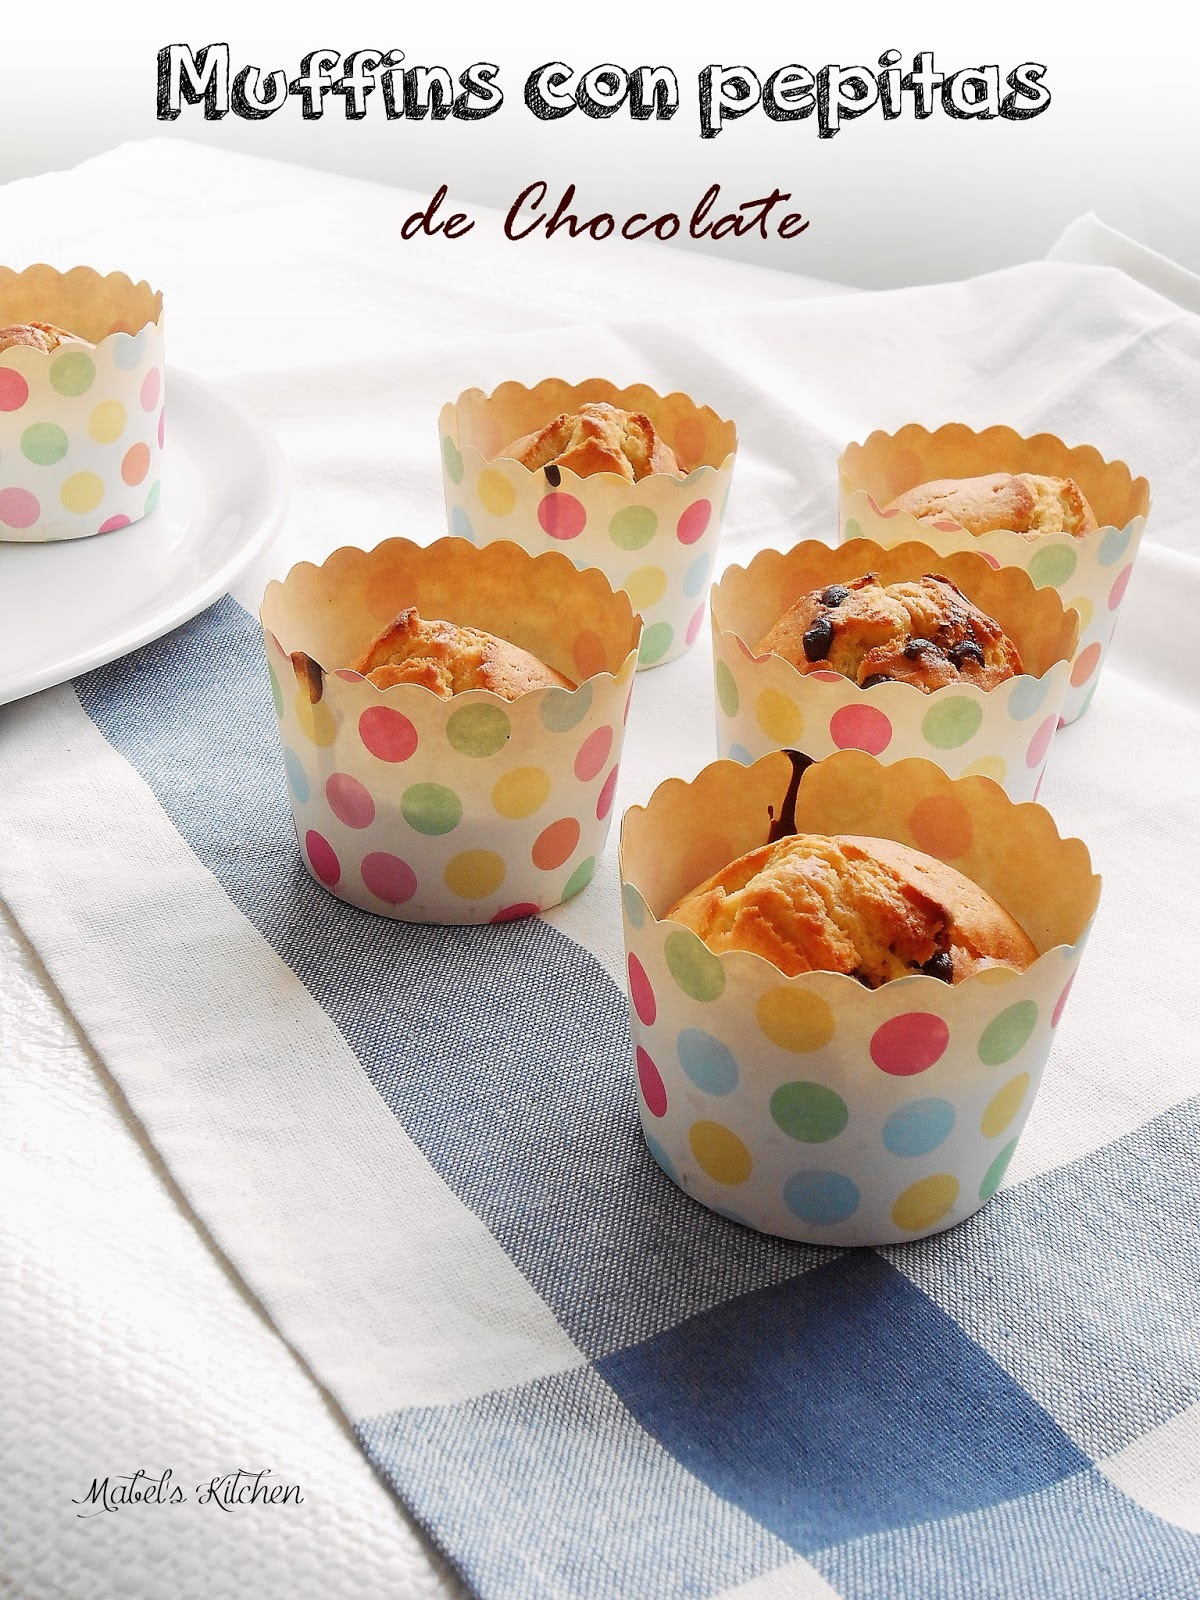 Muffins con Pepitas de Chocolate.